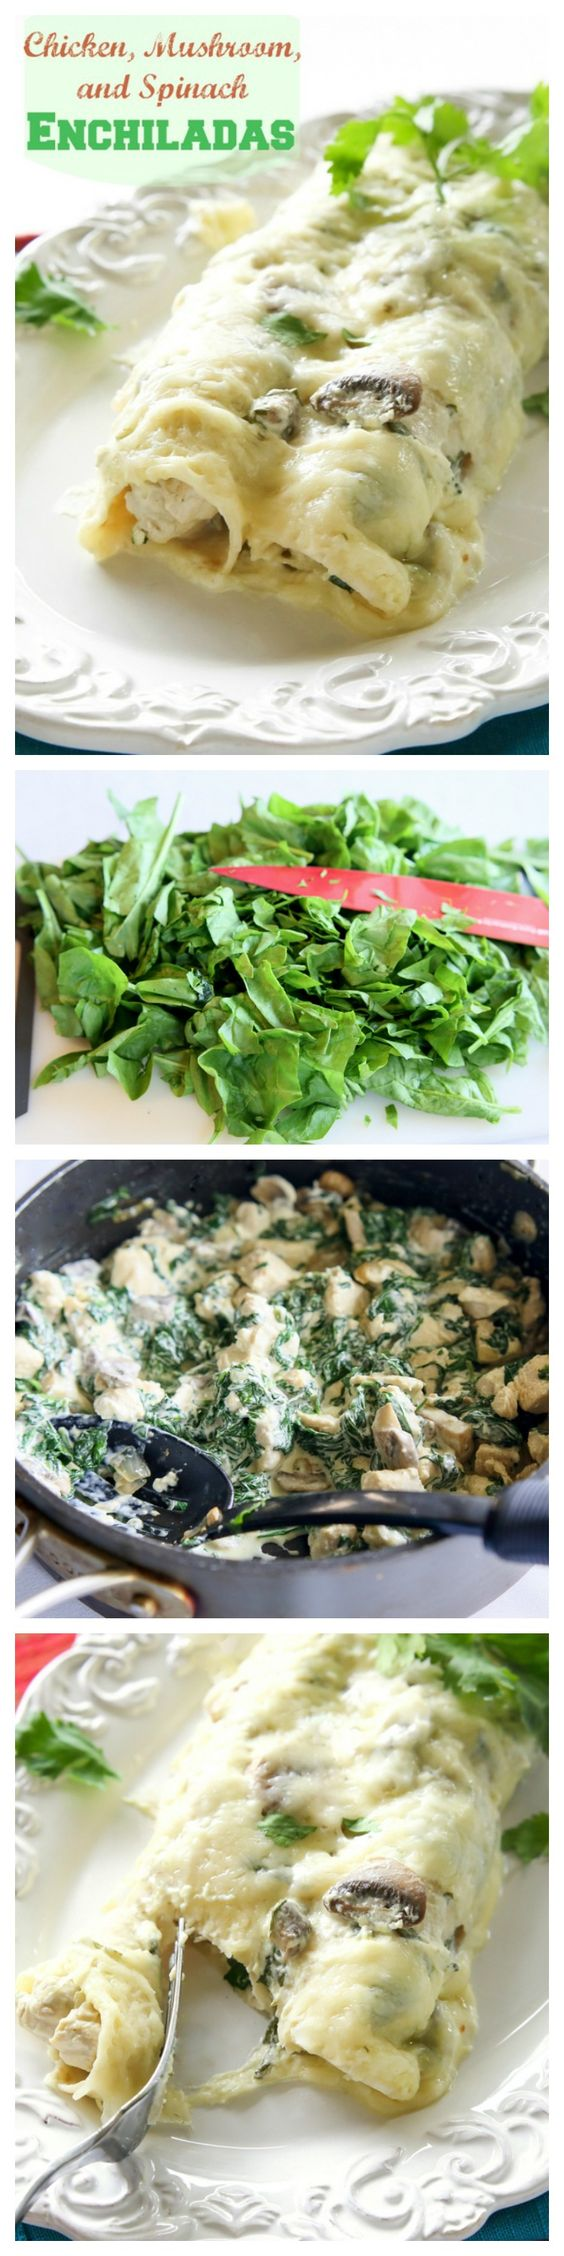 Chicken, Spinach, and Mushroom Enchiladas * Use low carb tortillas for ...